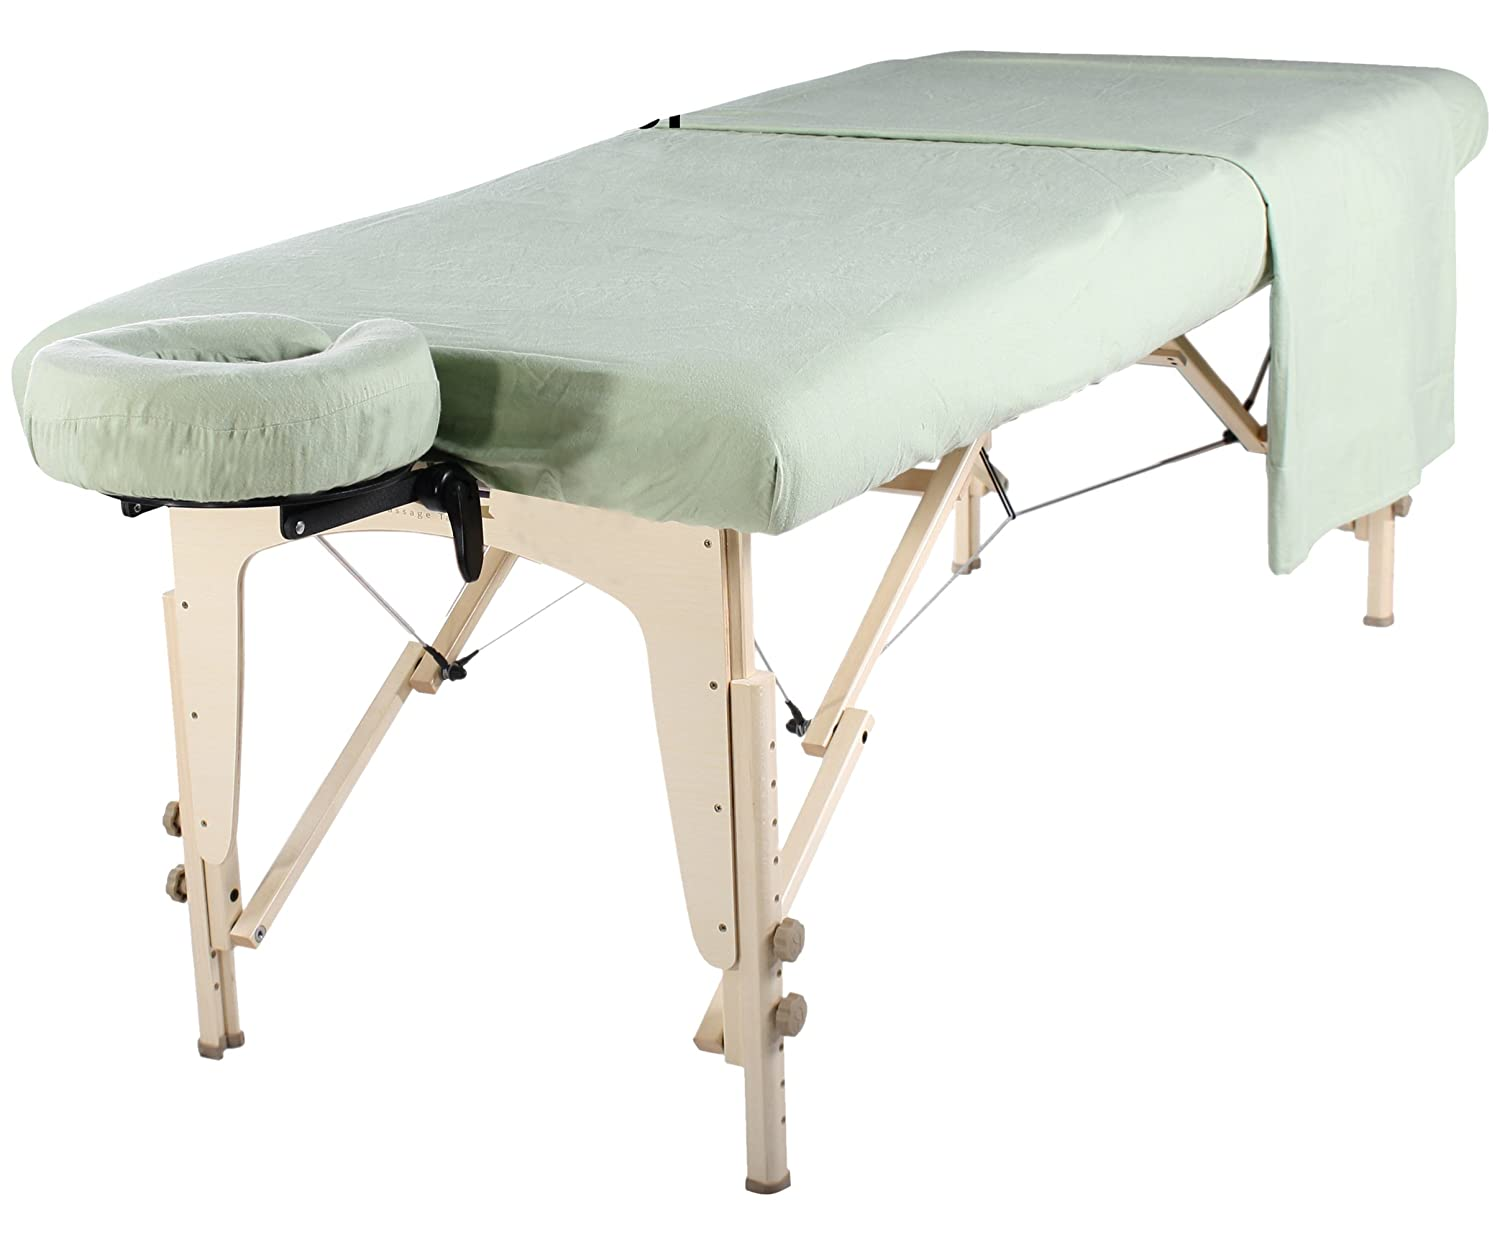 Mt Universal Massage Table Flannel Sheet Set 3 in 1 Table Cover, Face Cushion Cover, Table Sheet, Lily Green Master Home Products LTD. (DROPSHIP)